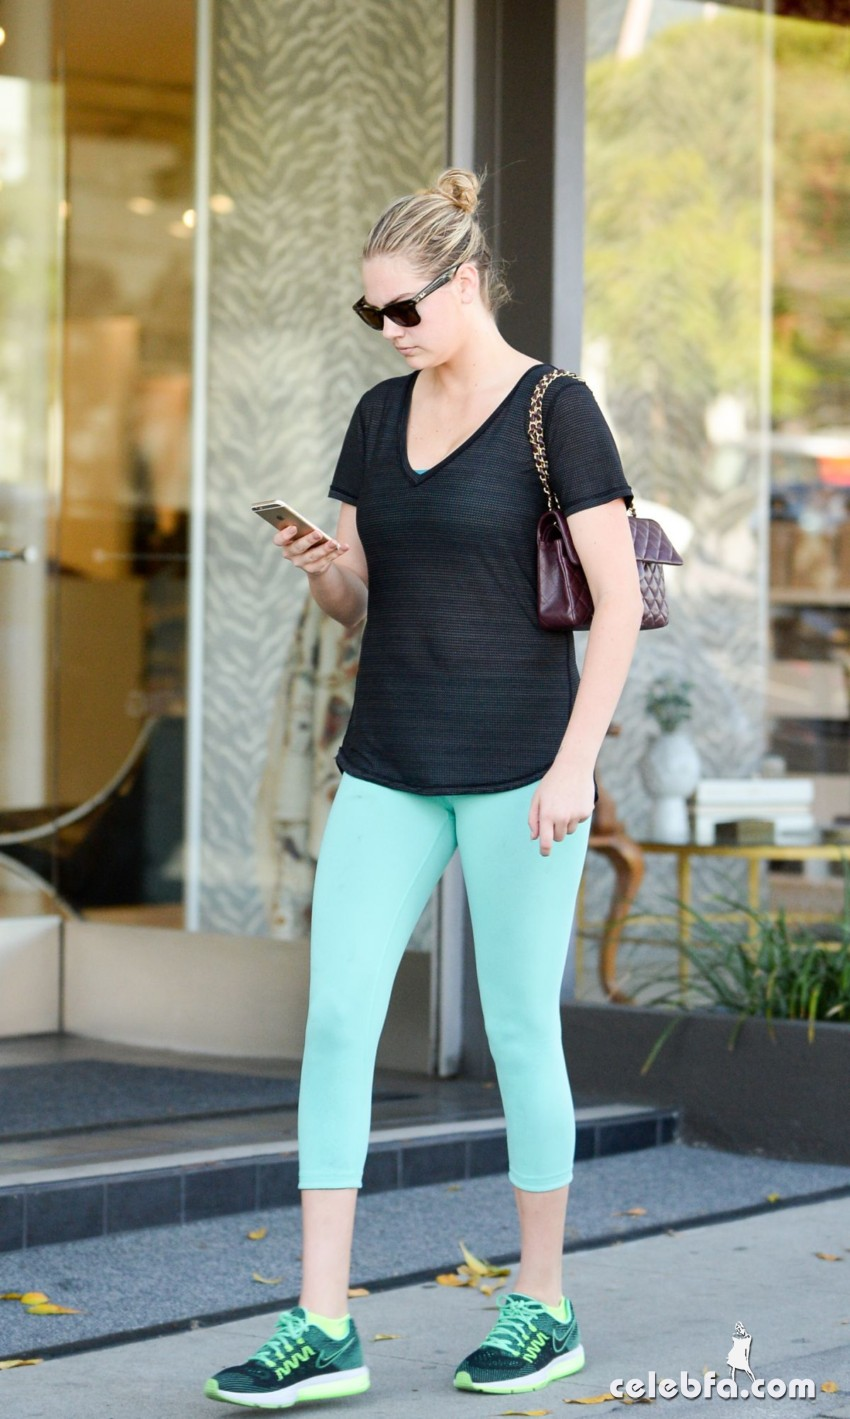 kate-upton-leaves-a-gym-in-west-hollywood (3)